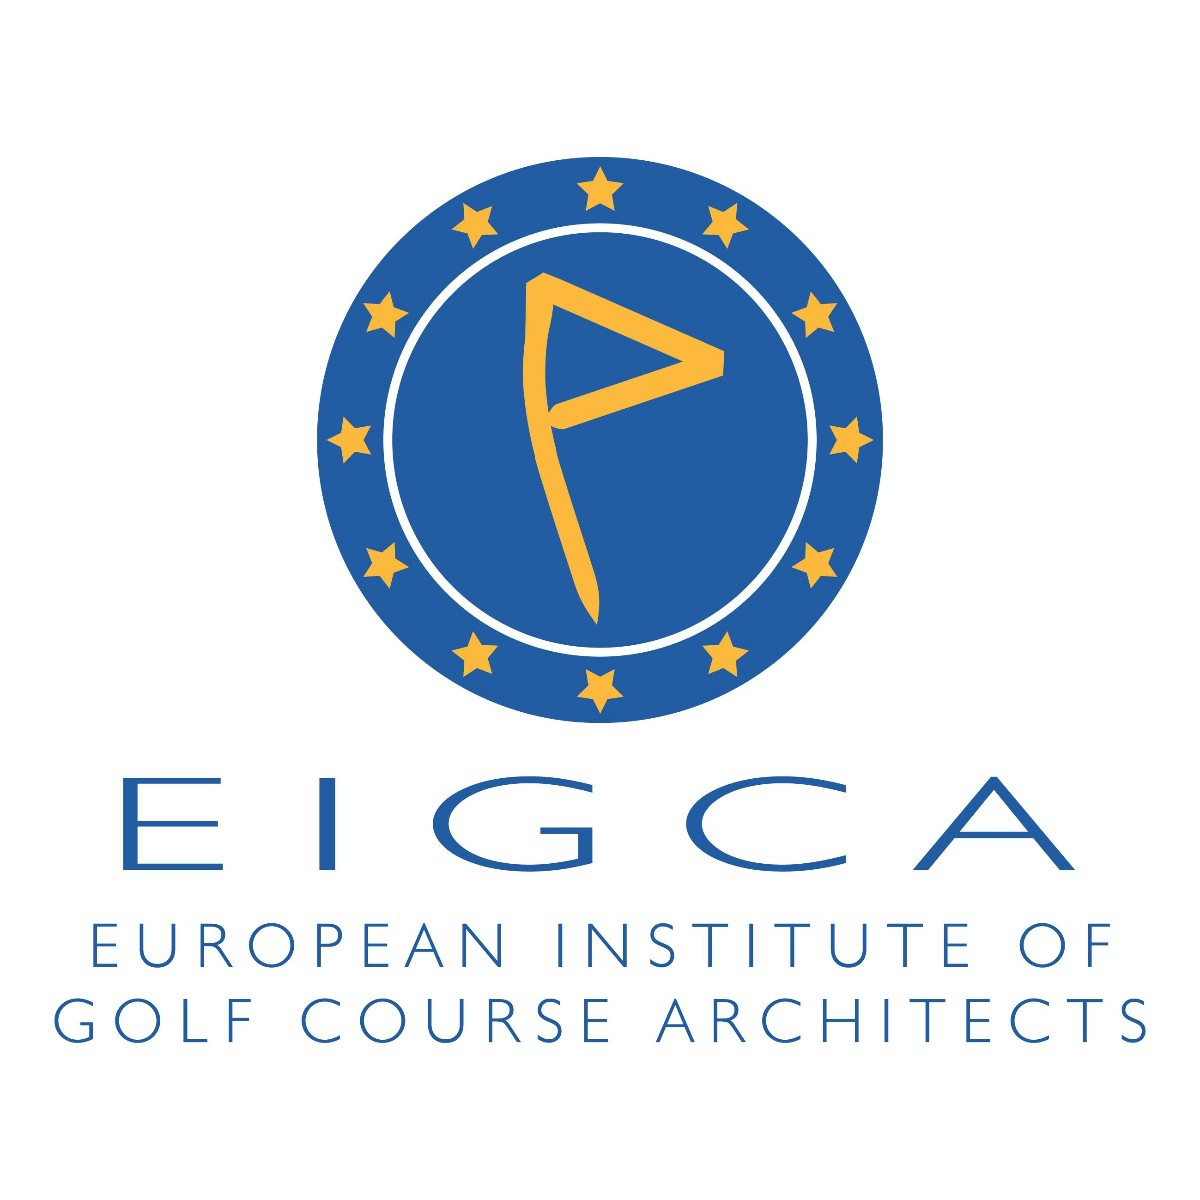 http://www.atlanticgolfconstruction.com/news/Detail/eigca-announces-three-new-partners